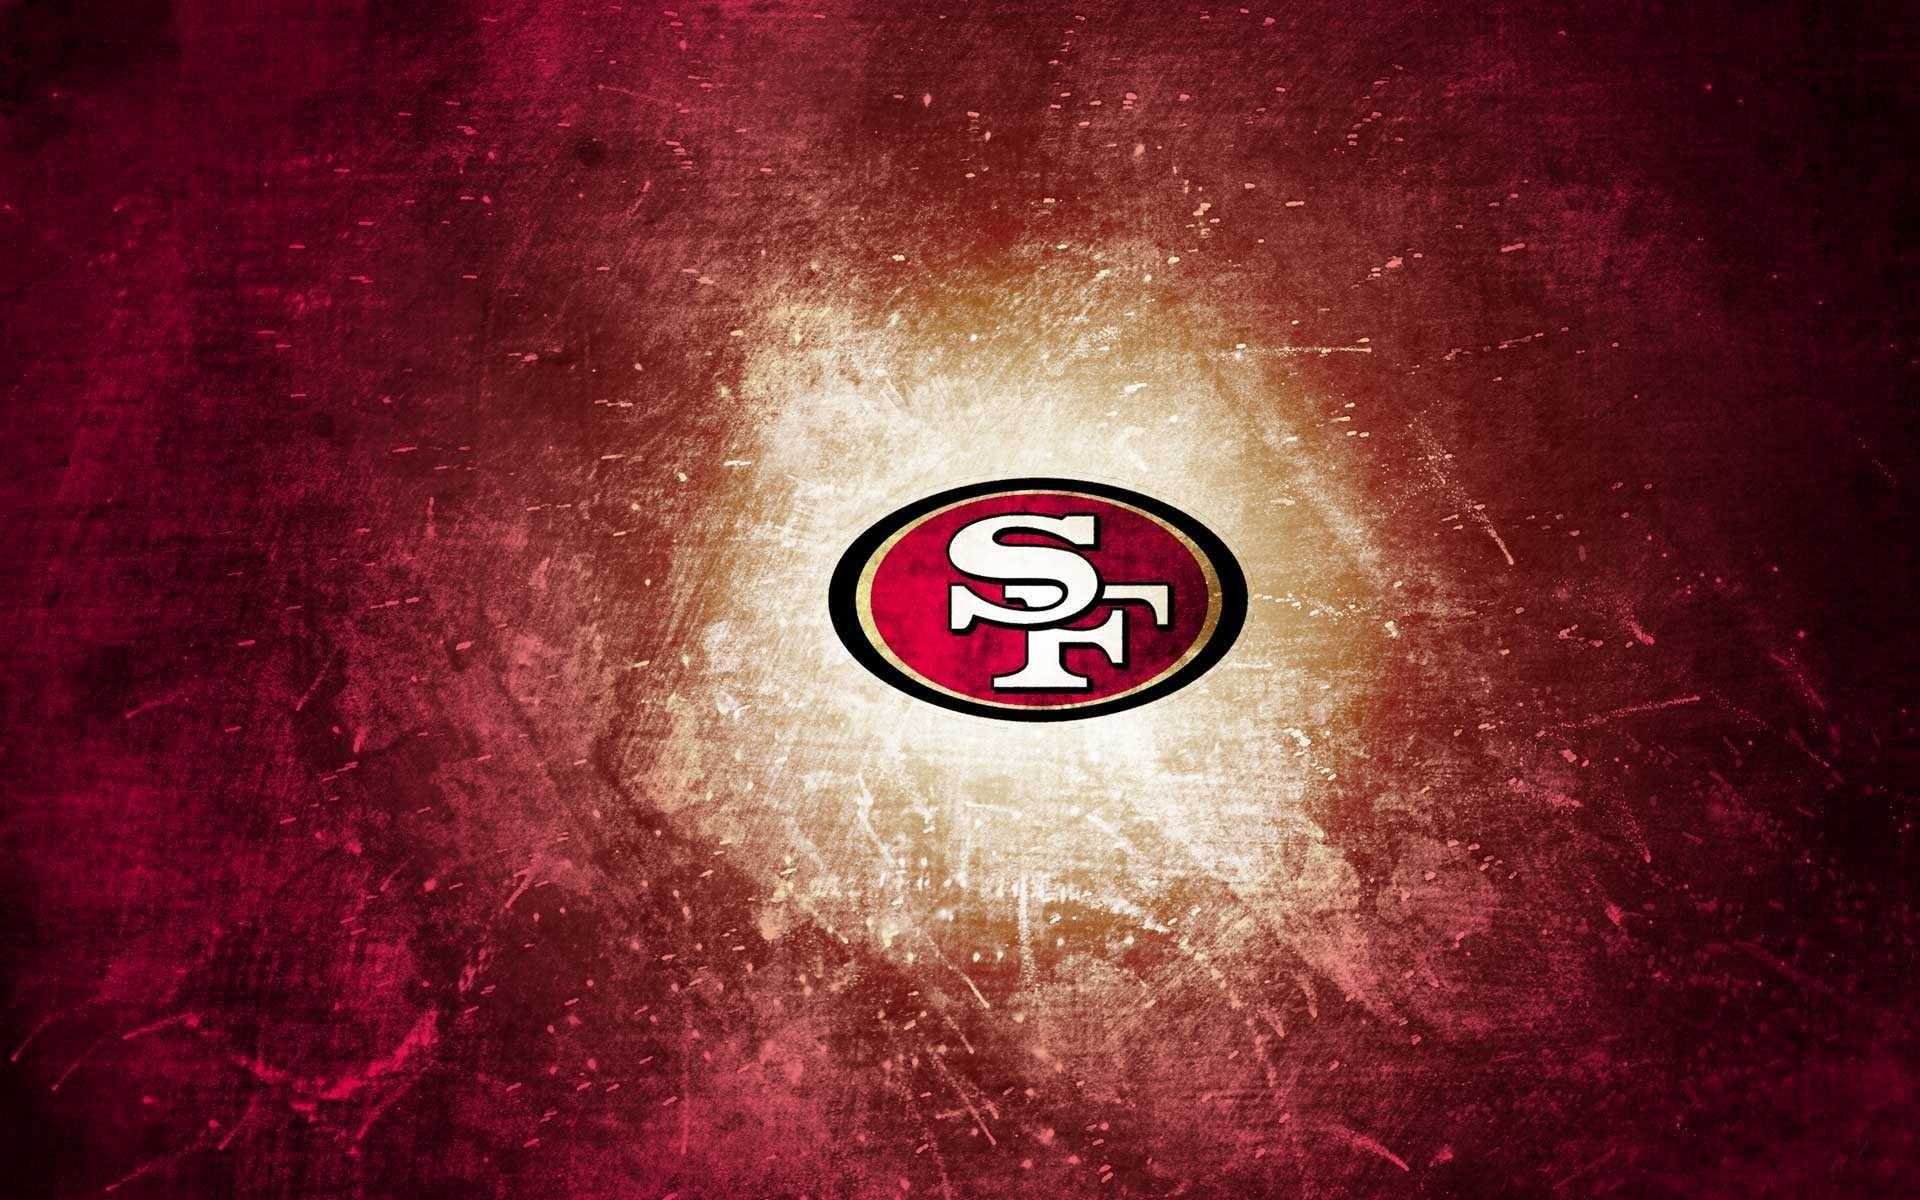 1920x1080 2018 San Francisco 49ers Wallpapers PC IPhone Android With Wallpaper